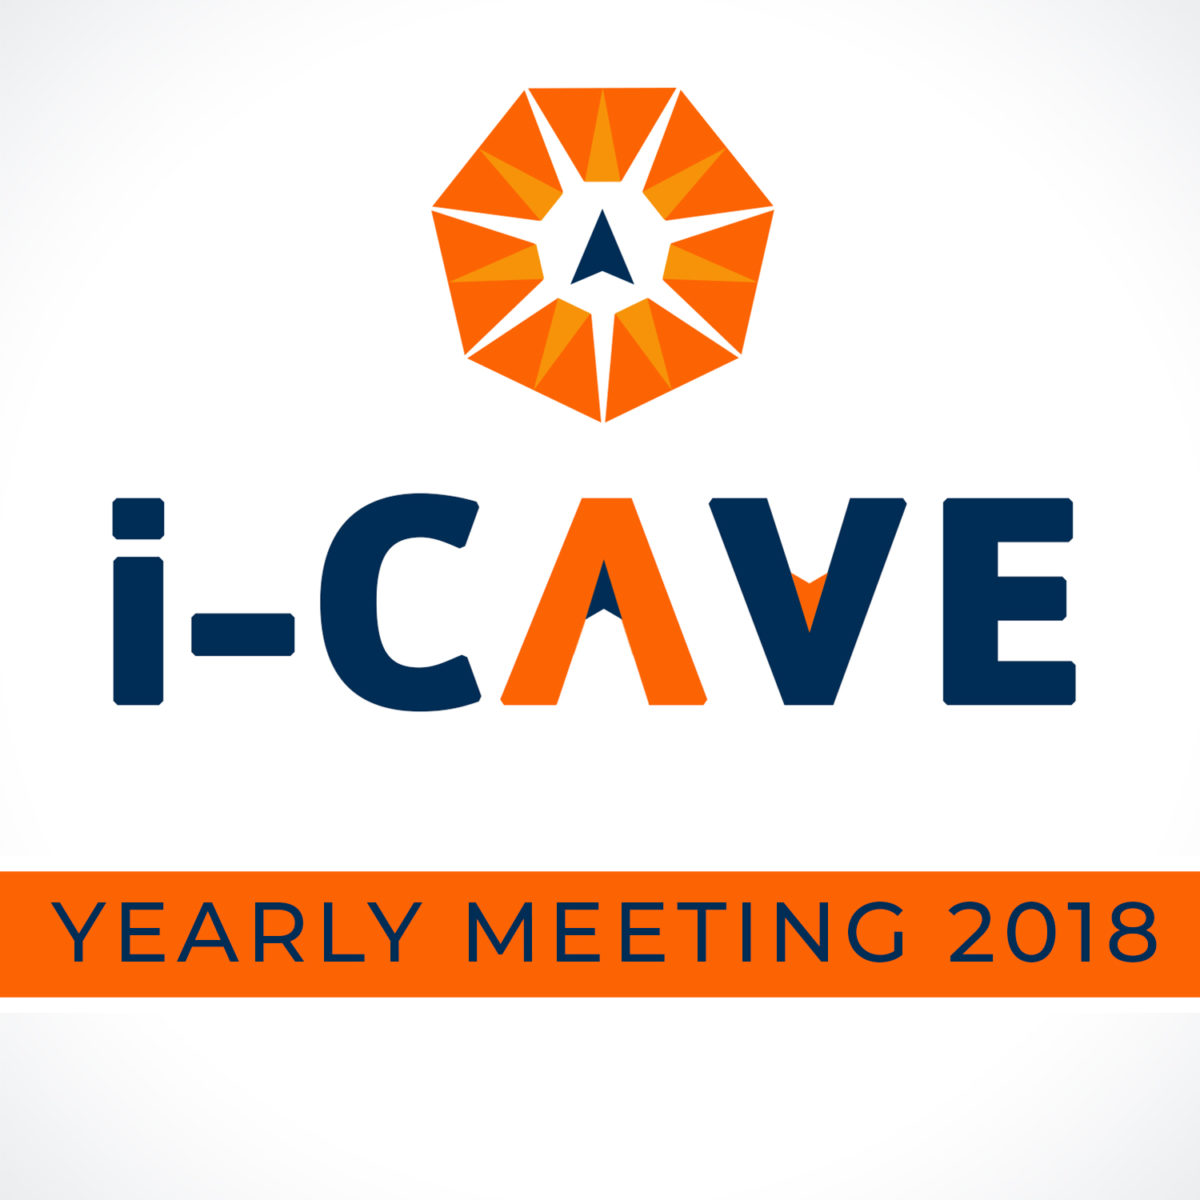 Yearly I-Cave meeting 2018